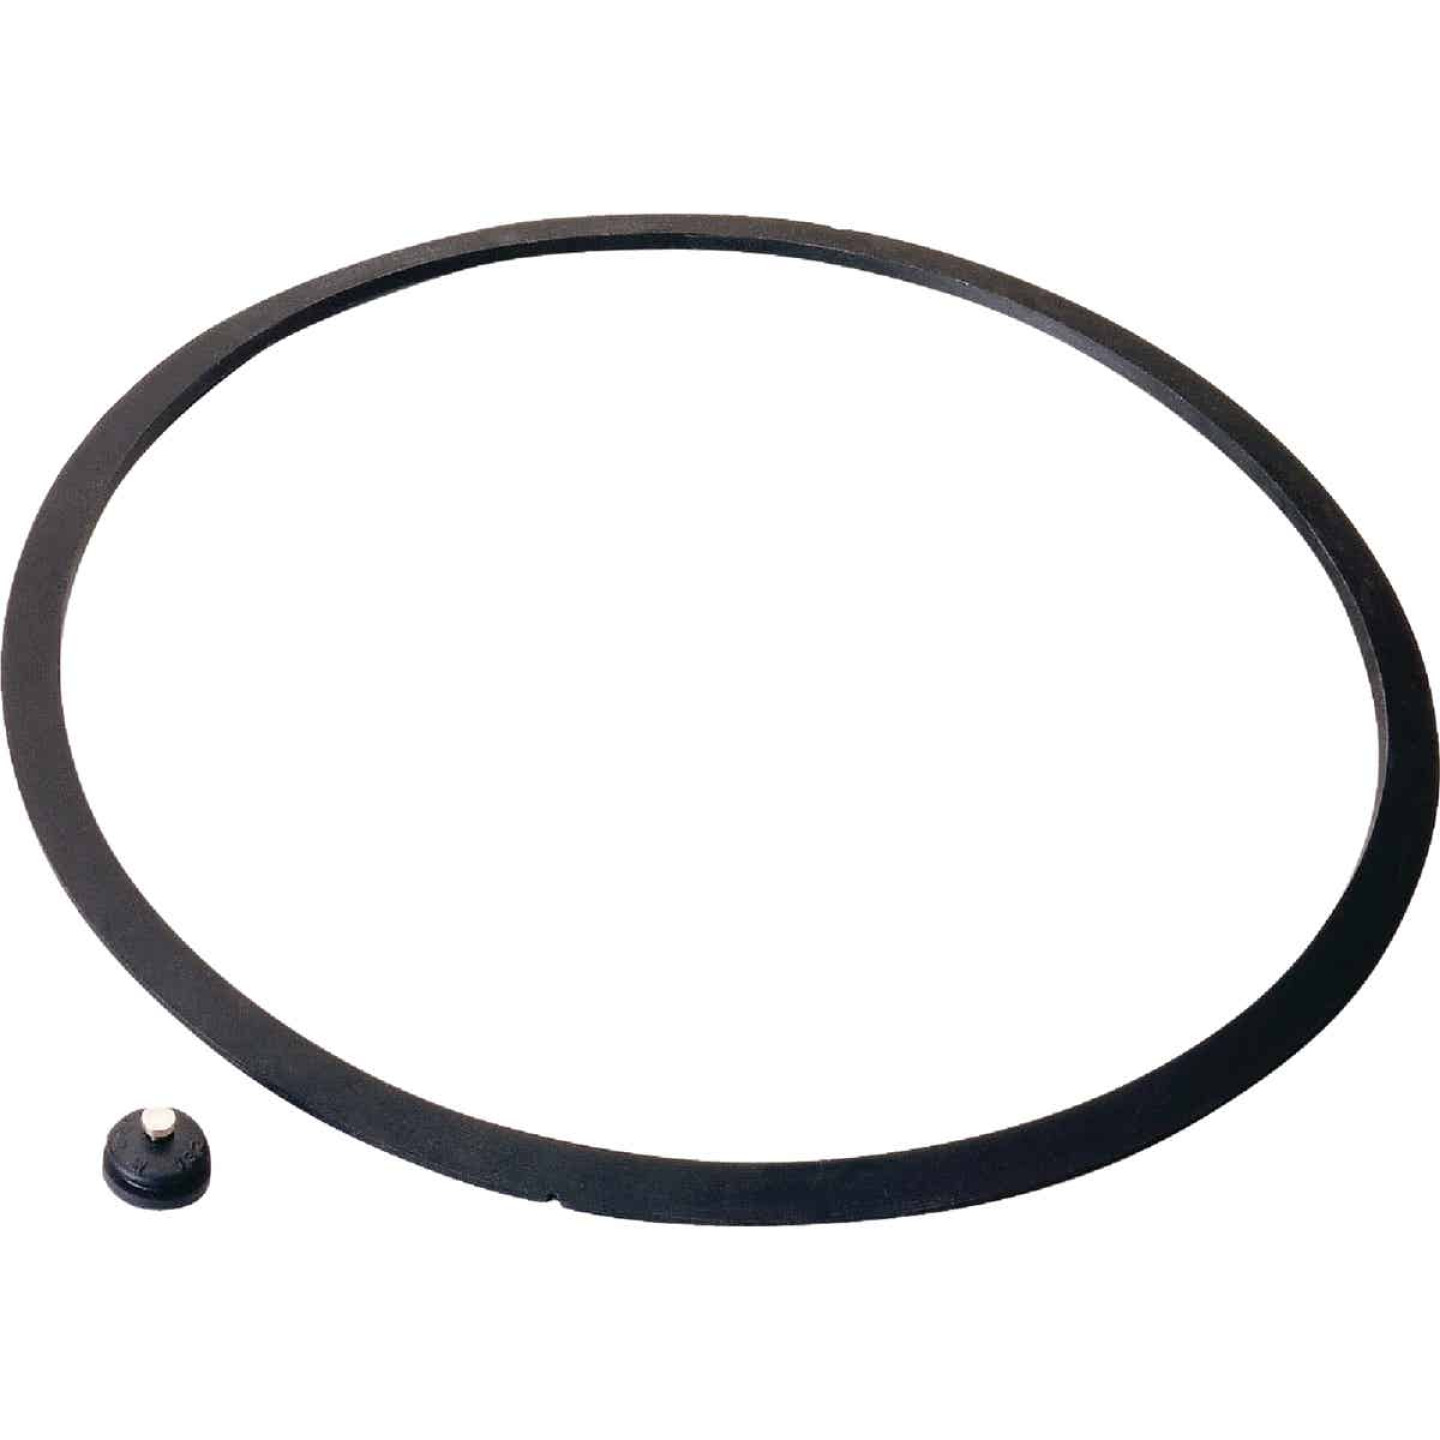 Presto 2 to 4 Qt. Pressure Cooker or Canner Gasket Image 1